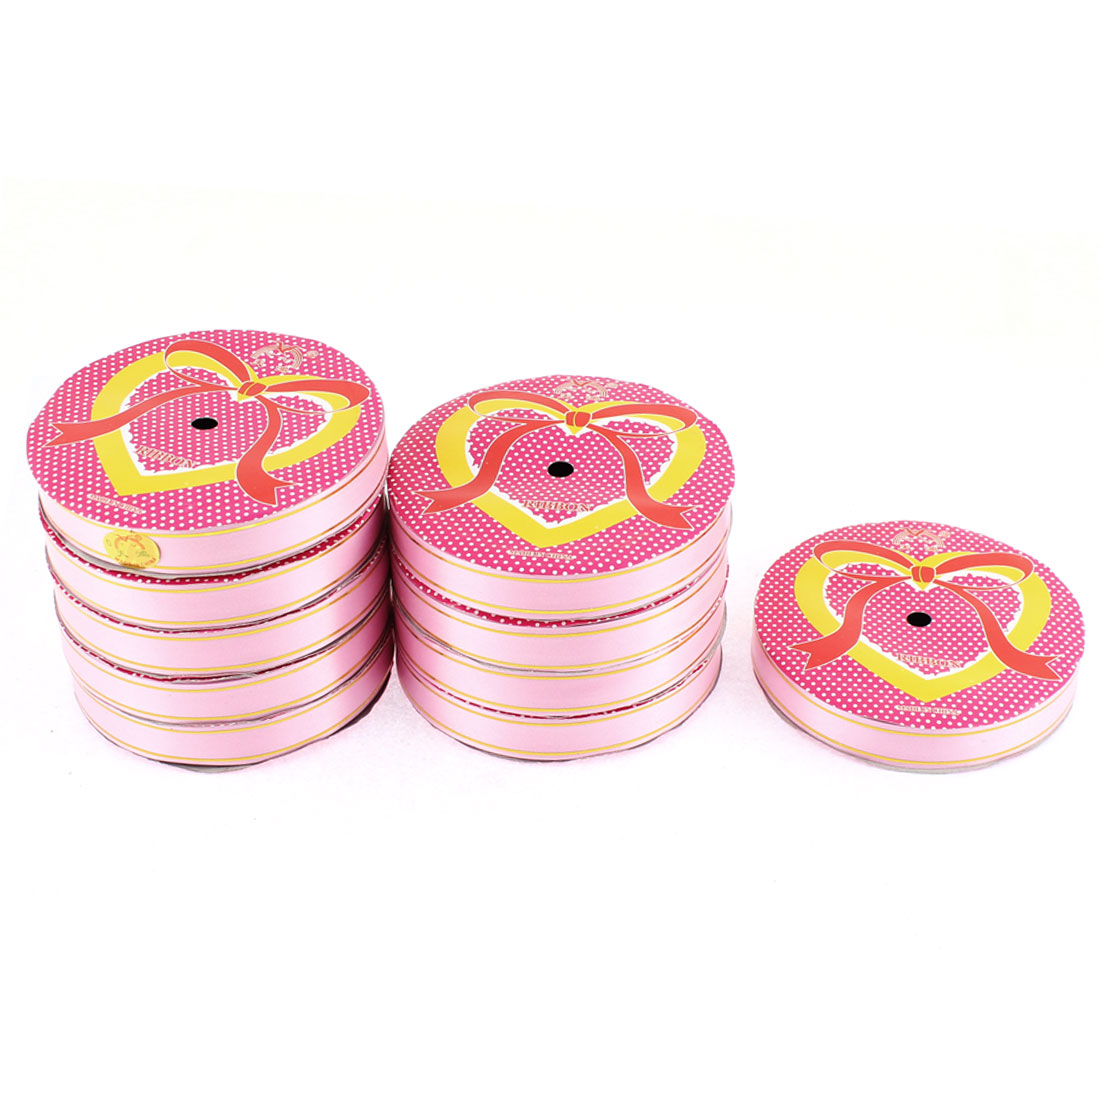 Wedding Festival Polyester Satin Ribbon Roll Tape Pink 20m 22 Yards 10pcs